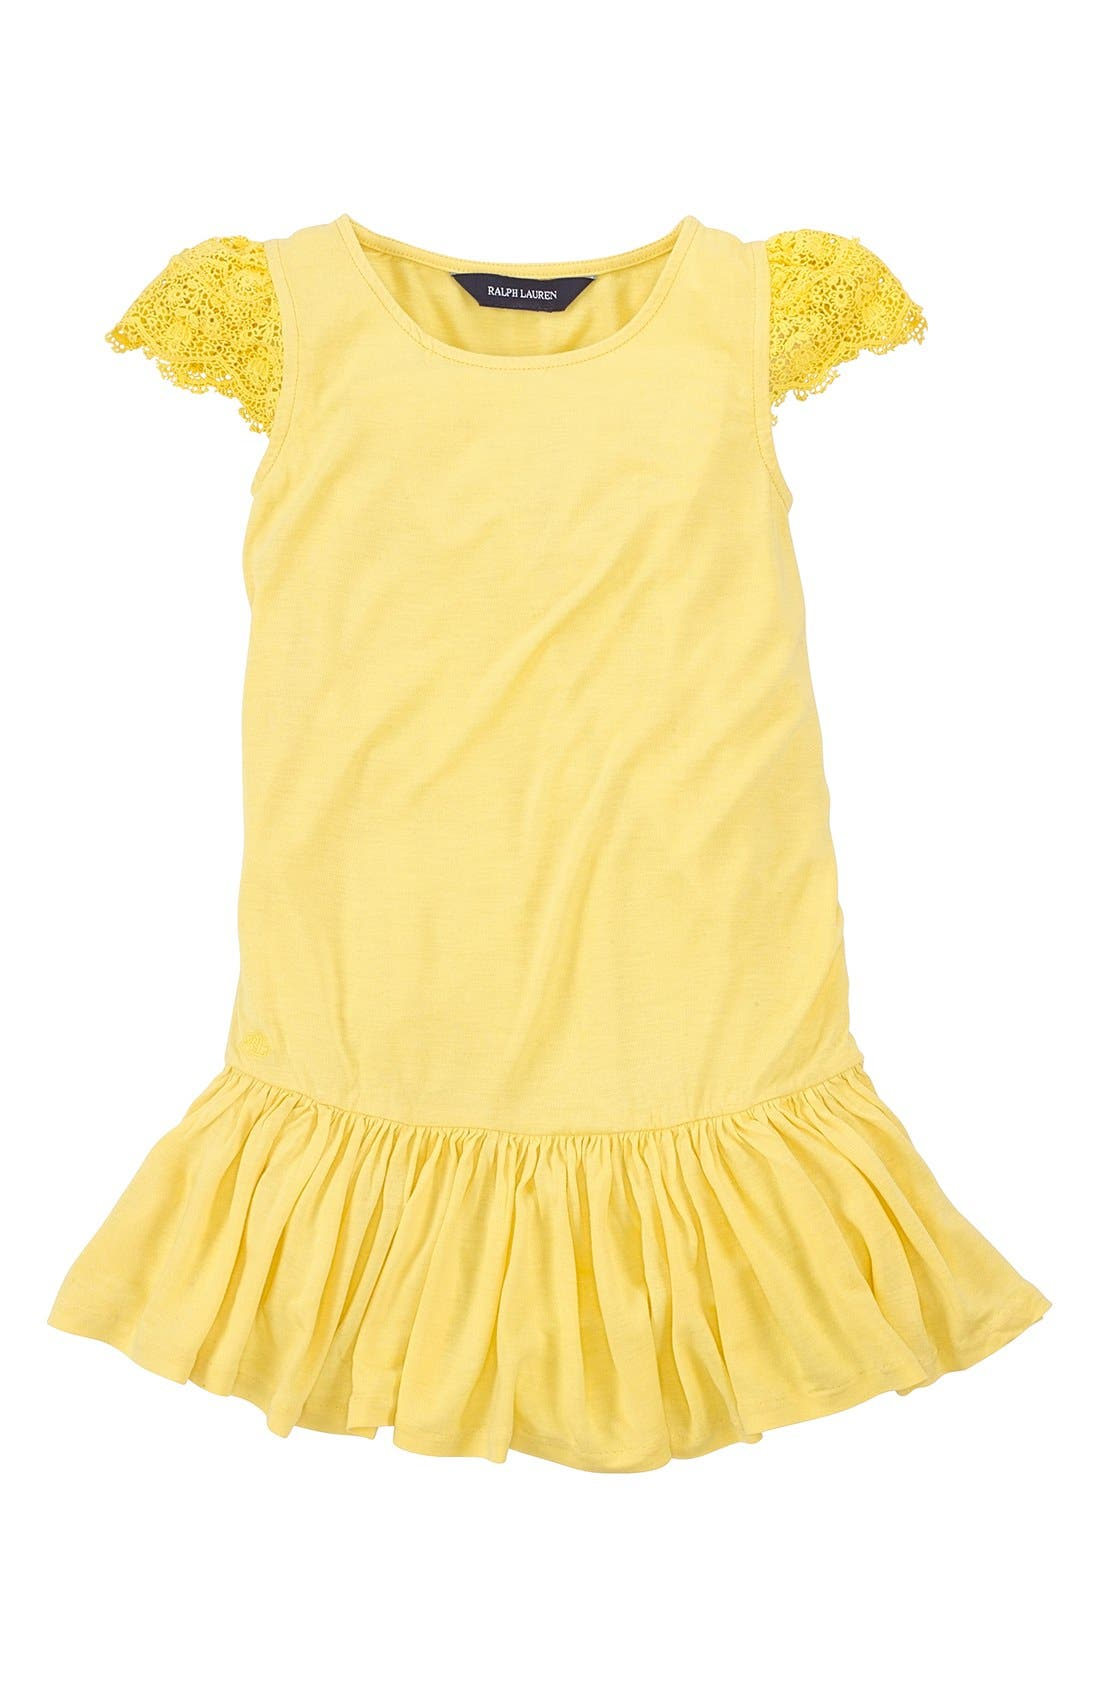 Lace Sleeve Dress,                         Main,                         color, Oasis Yellow